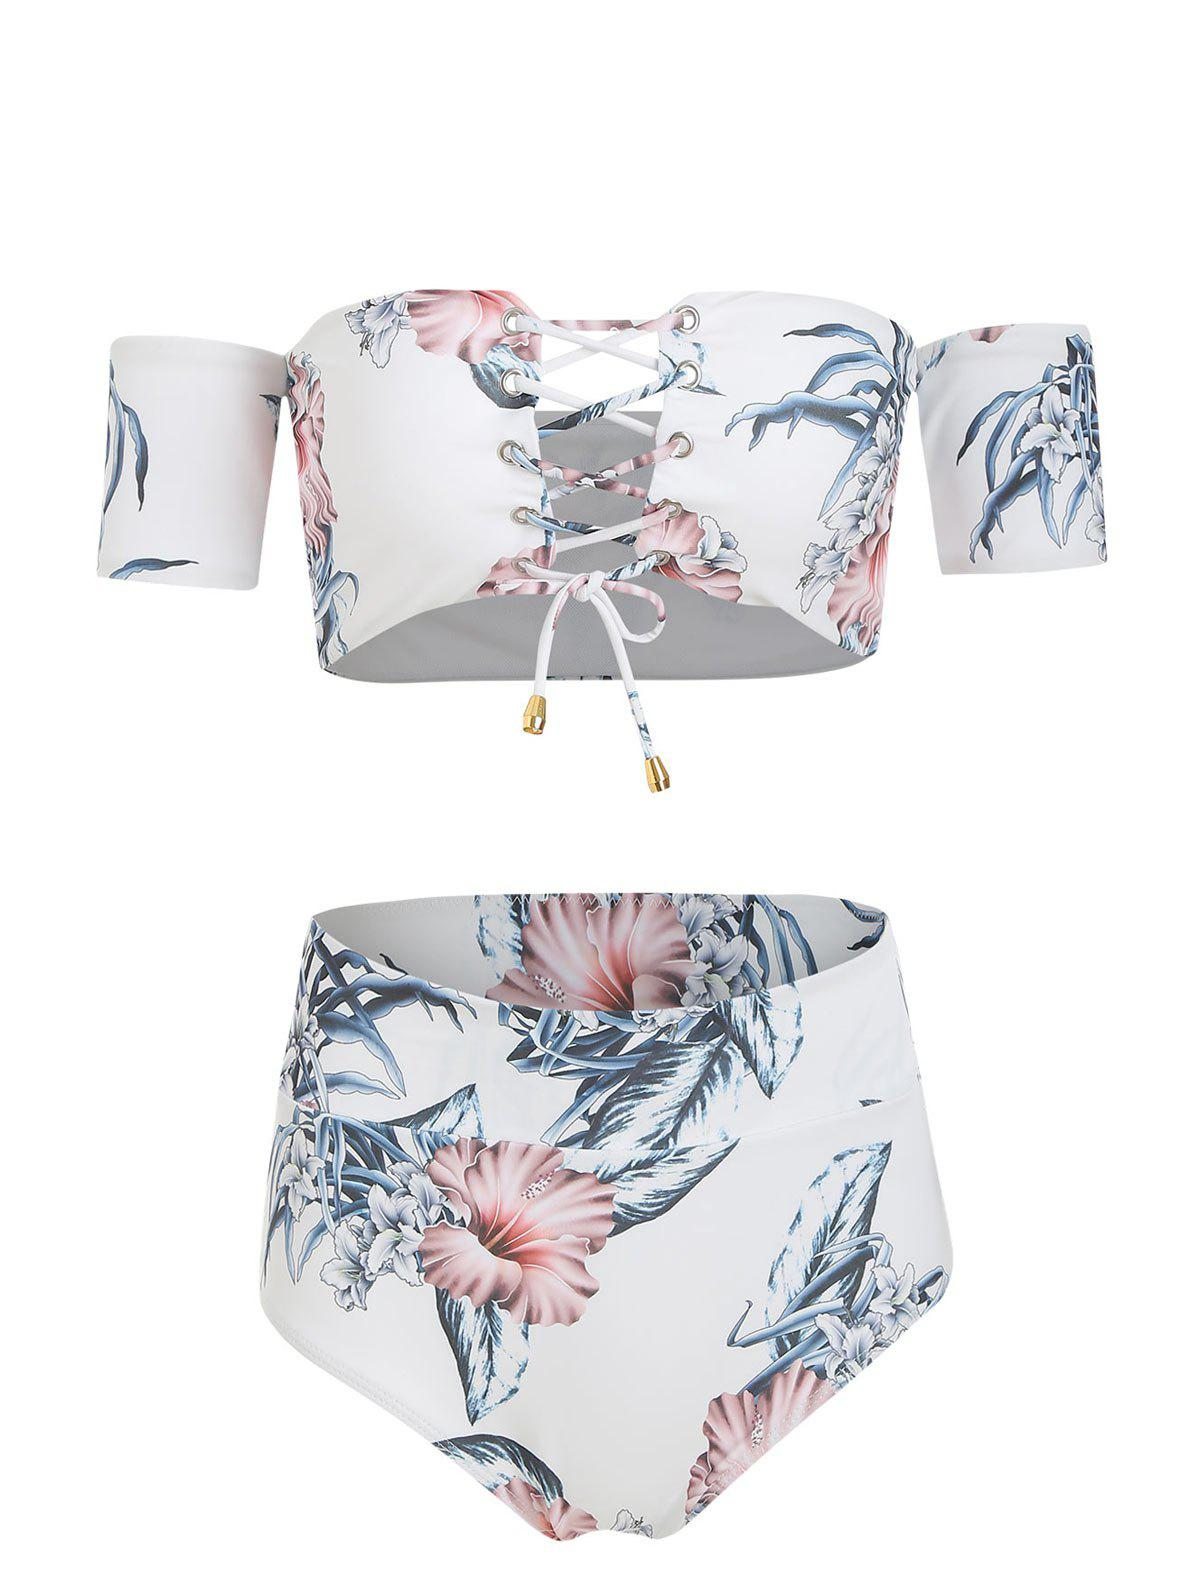 Sale Off The Shoulder Floral Print Lace Up Bikini Set